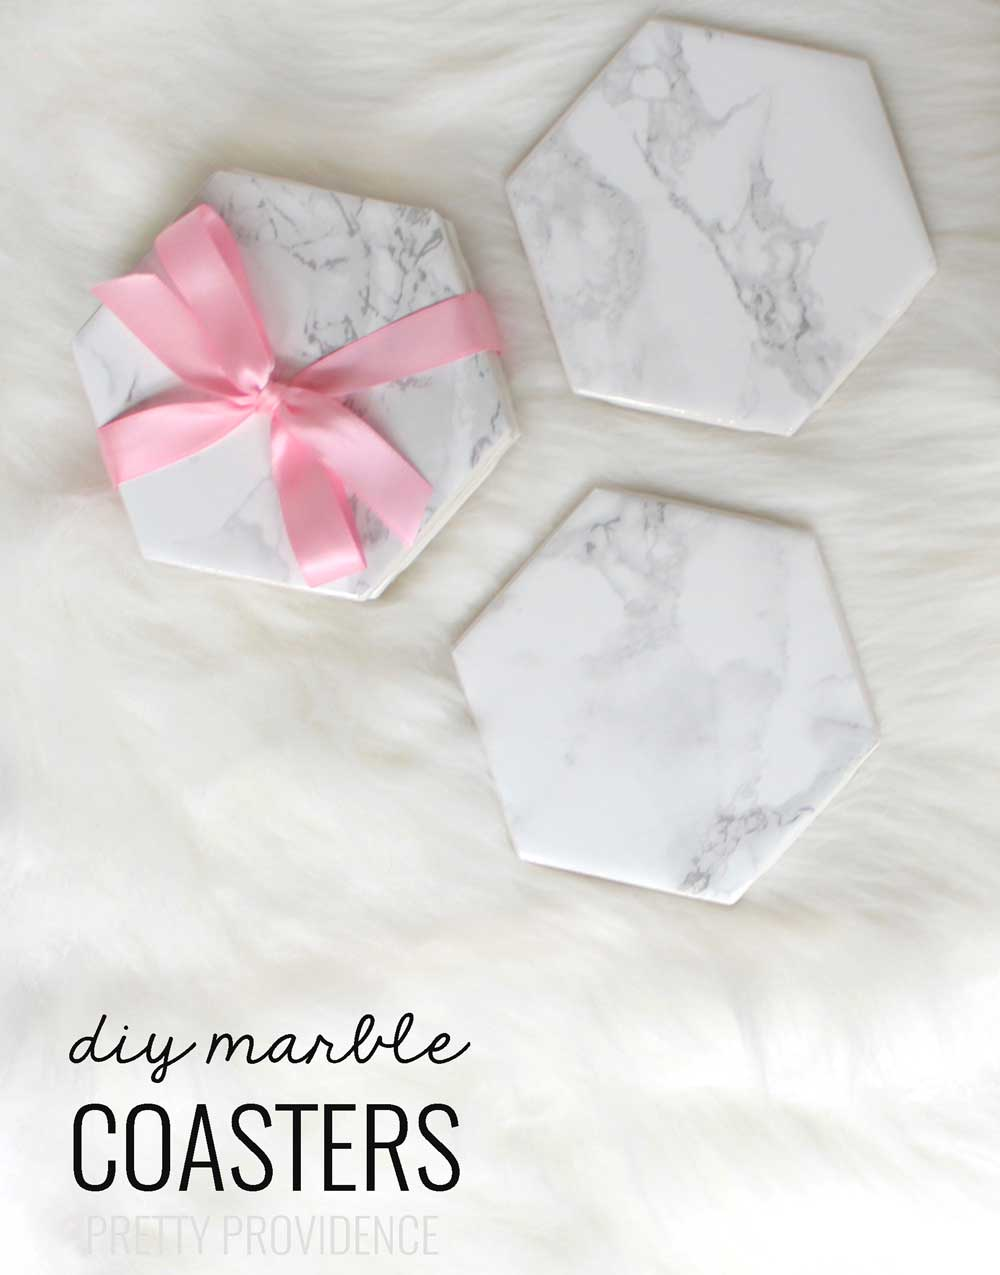 DIY Marble Coasters - such a cute, simple and inexpensive gift idea that is perfect for birthdays or even the holidays